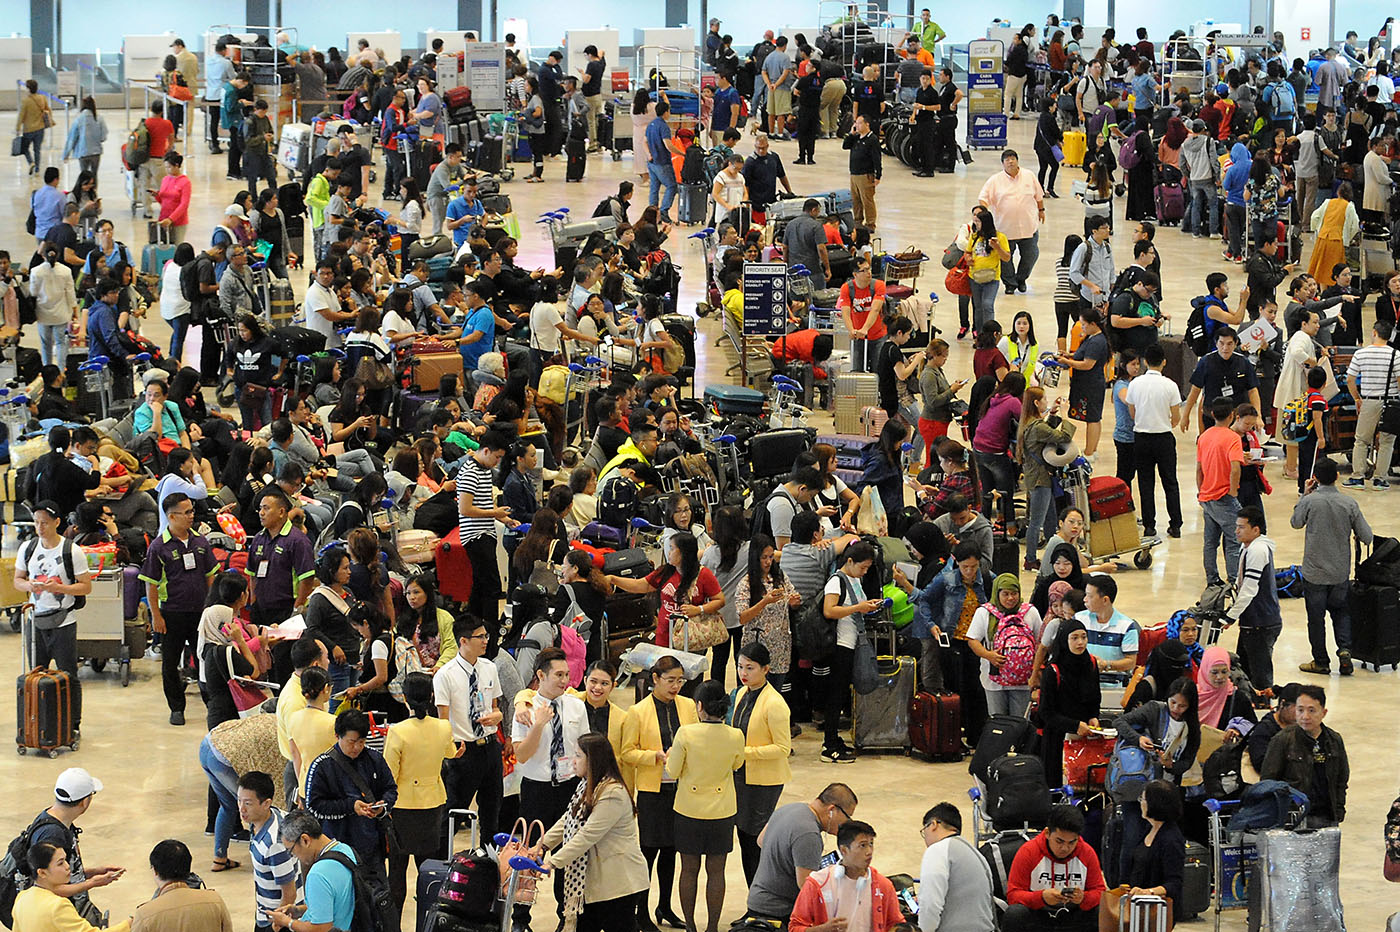 STRANDED. Passengers wait at the Ninoy Aquino International Airport Terminal 1 on August 17, 2018. Photo by Ben Nabong/Rappler